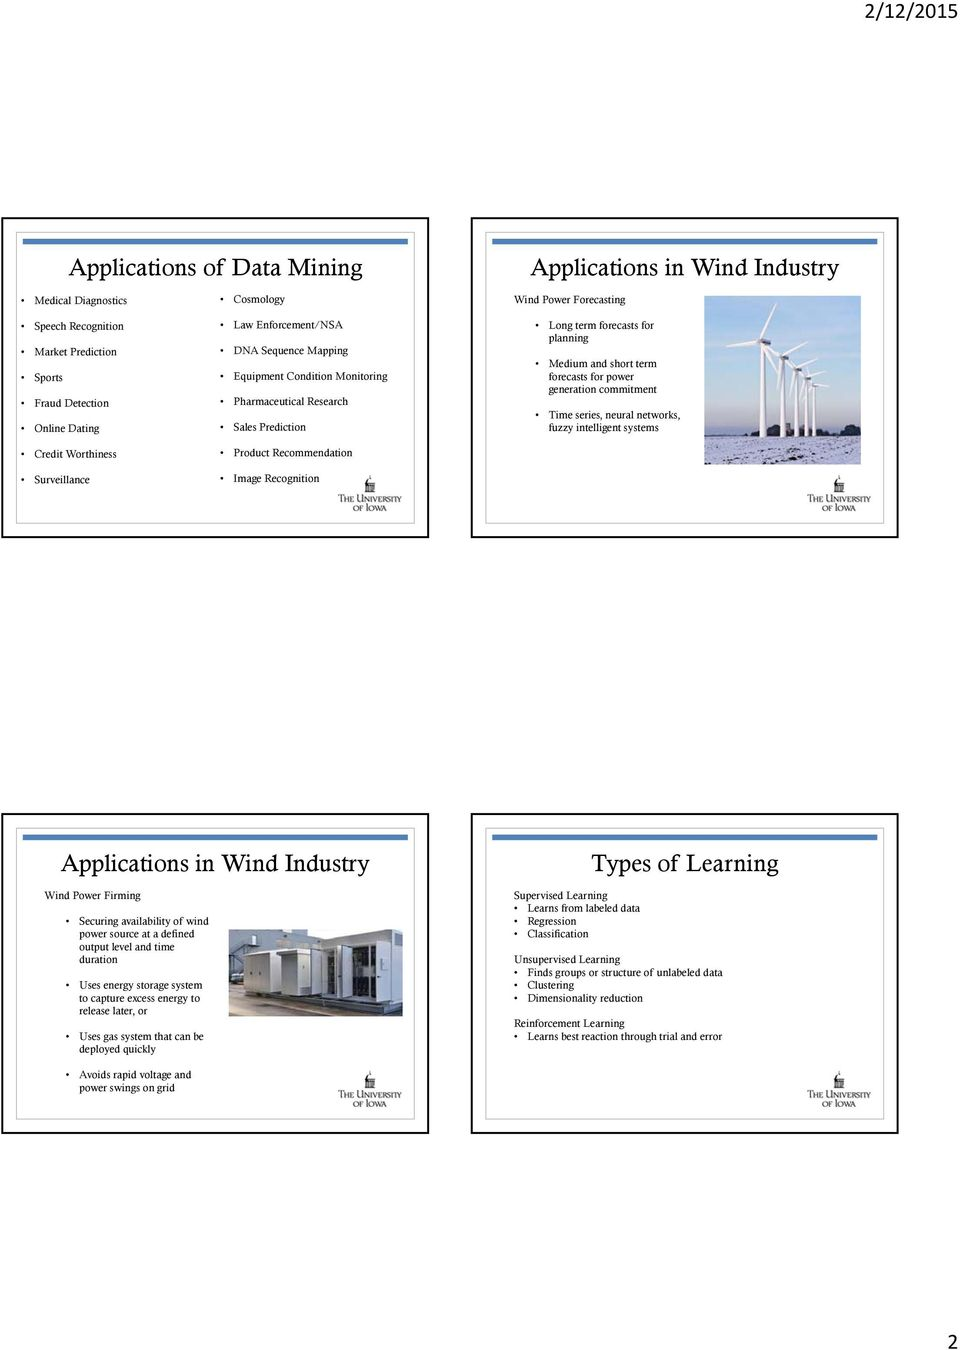 planning Medium and short term forecasts for power generation commitment Time series, neural networks, fuzzy intelligent systems Applications in Wind Industry Wind Power Firming Securing availability